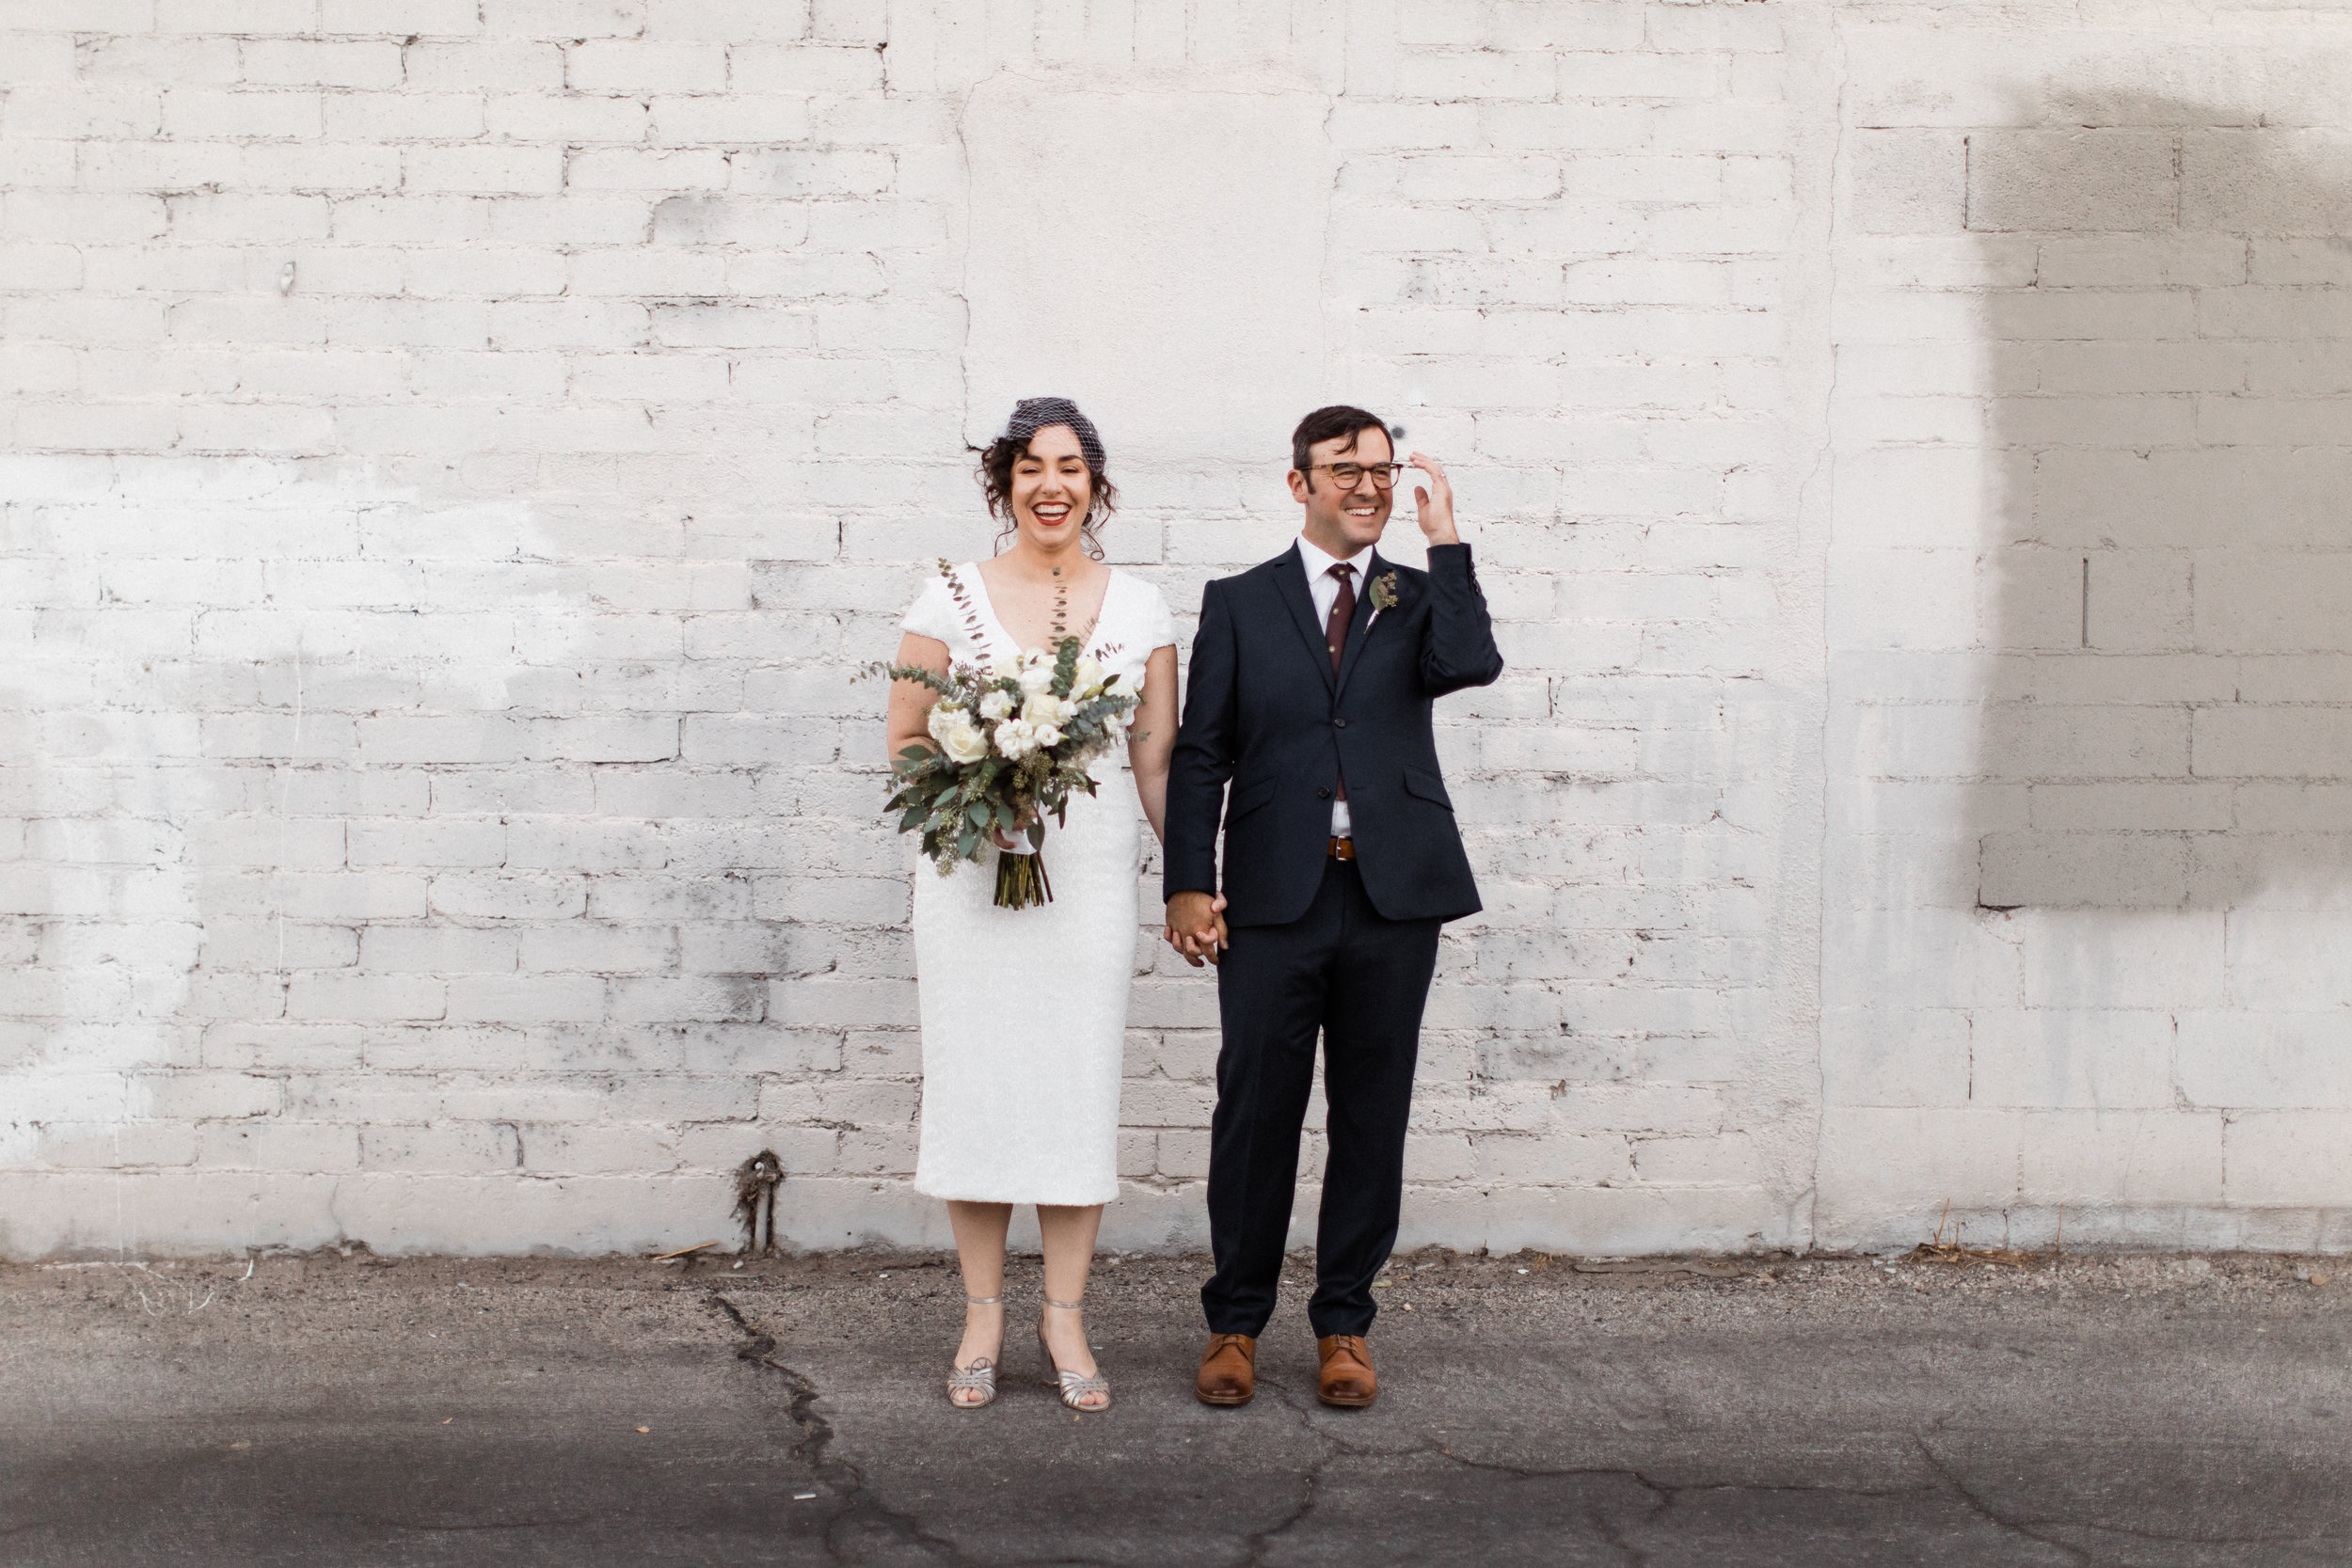 las vegas elopement photographer00013.jpg